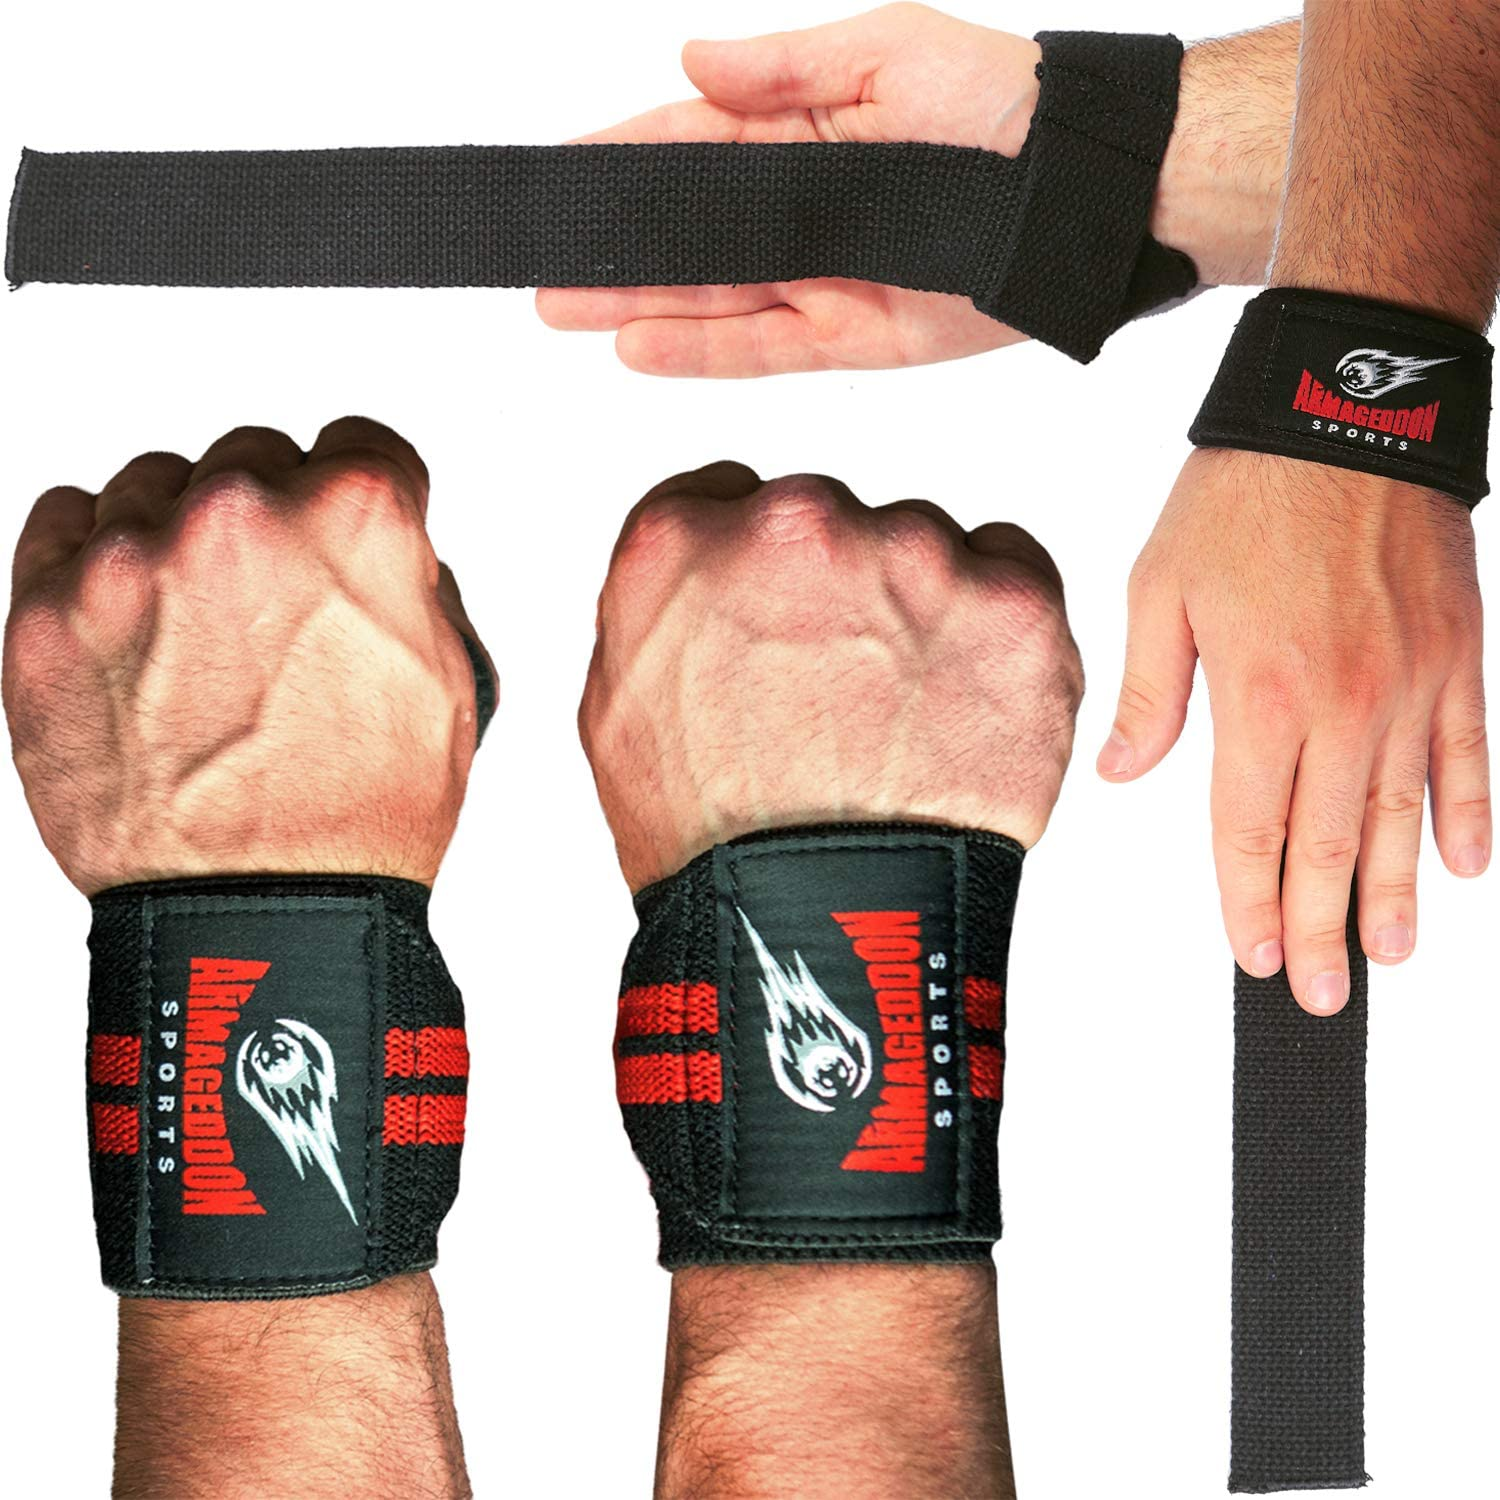 Padded WEIGHT LIFTING HAND BAR GYM TRAINING STRAPS SUPPORT WRIST WRAPS COTTON